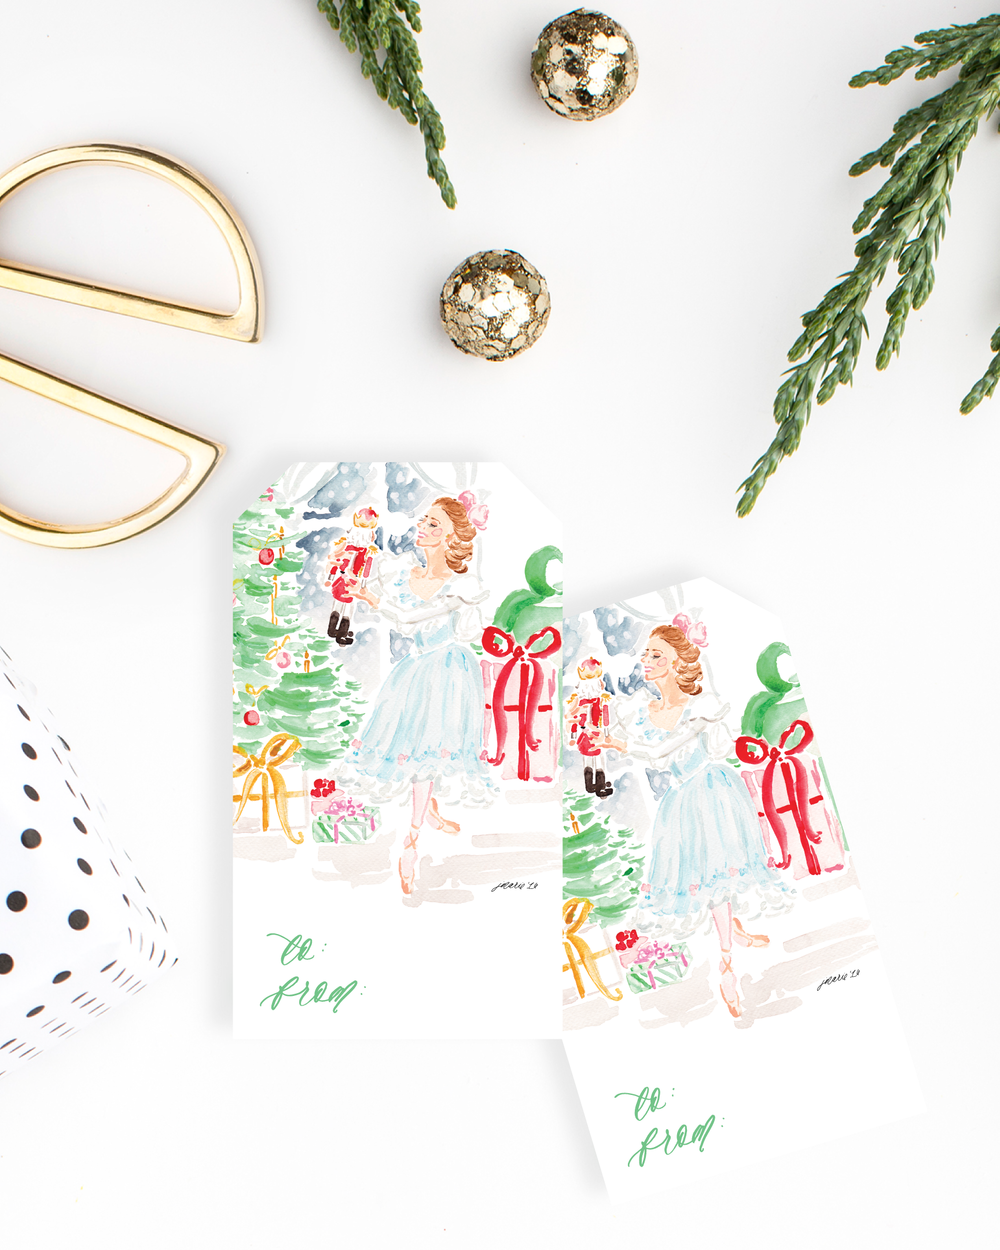 The Nutcracker Watercolor Gift Tags Variety Set Illustrated by Simply Jessica Marie | Top Tips for Using Styled Stock Photos for Shop Owners | SC Stockshop